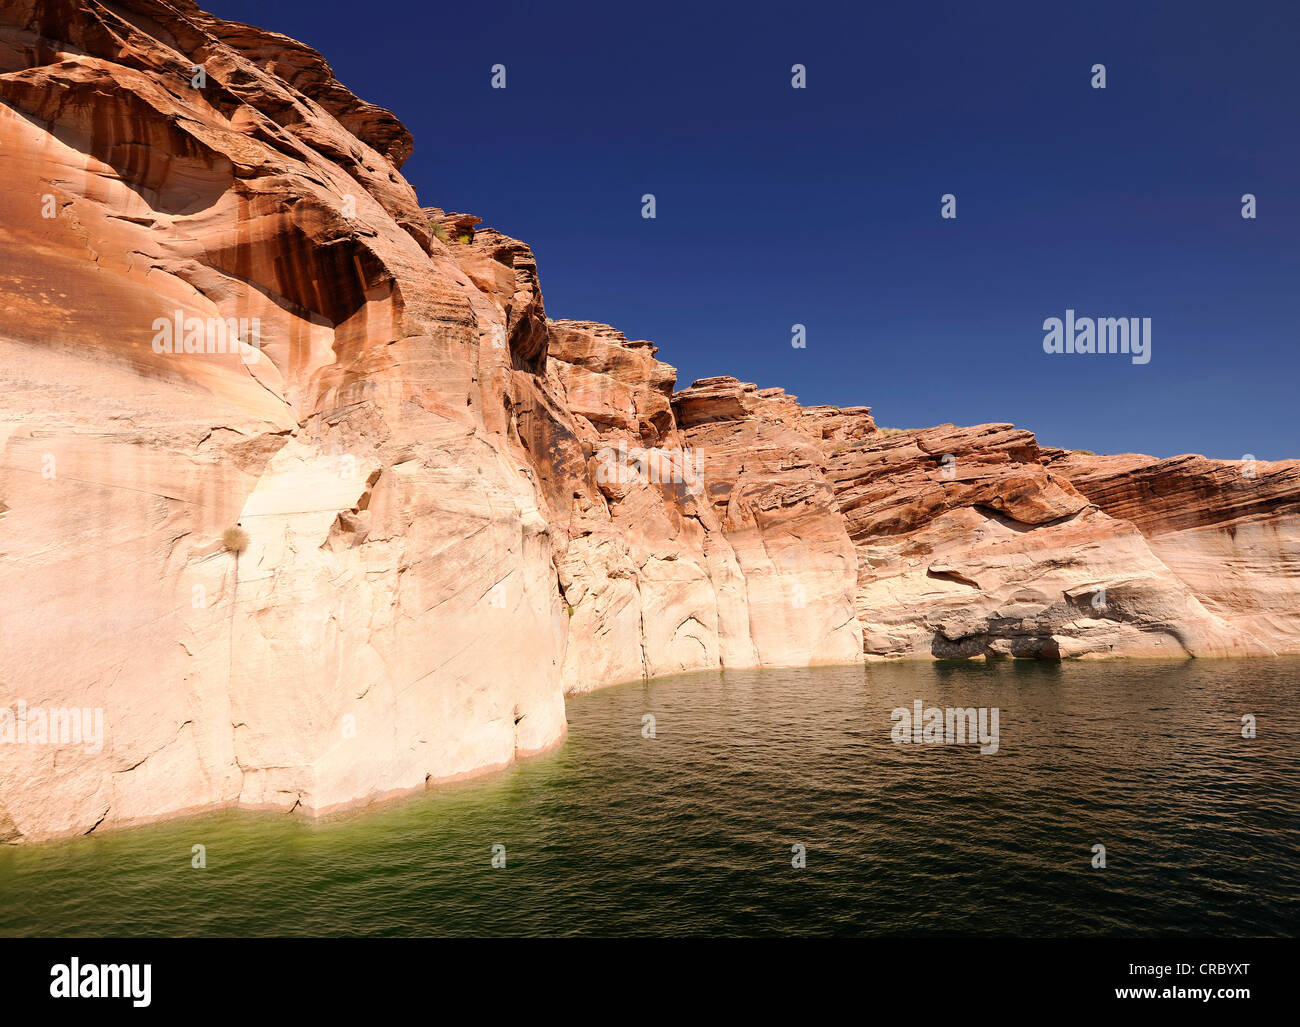 So-called bath tub rings of Antelope Canyon as seen from Lake Powell, indicators of peak water levels, Page - Stock Image